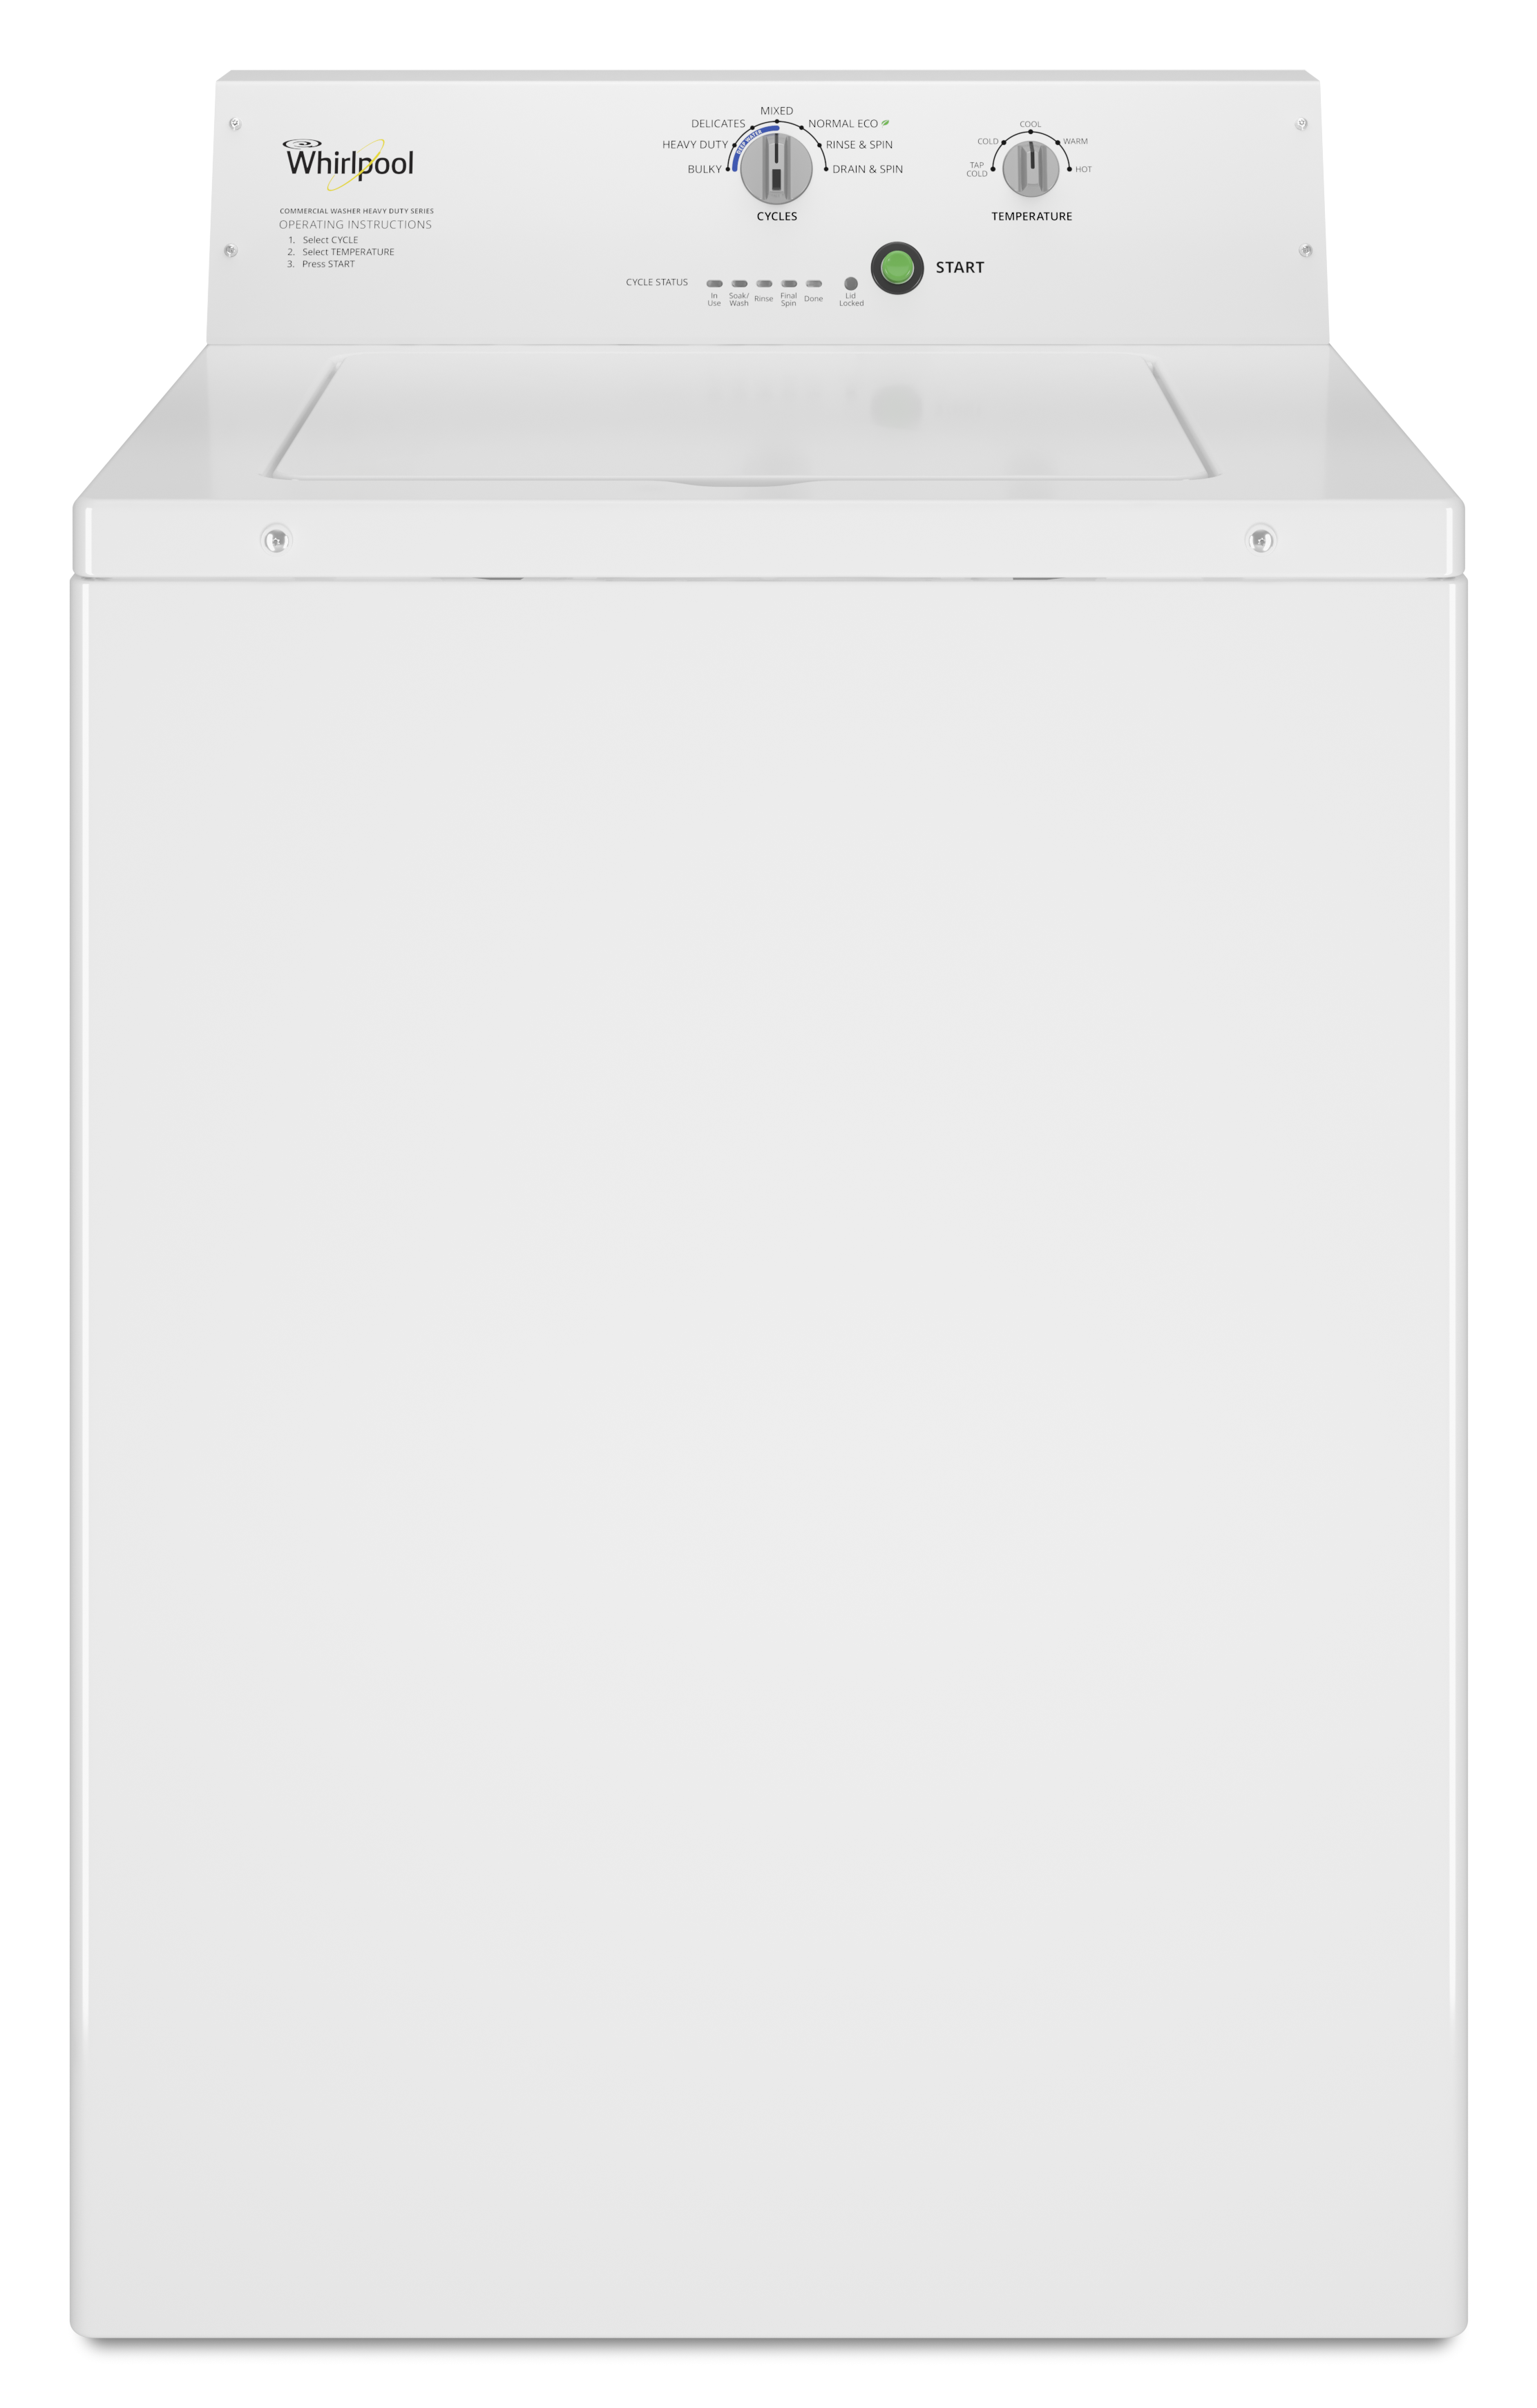 Cae2795fq Whirlpool 27 29 Cu Ft Commercial Top Load Washer With Washing Machine Drain Hose Additionally Wiring Diagram 1